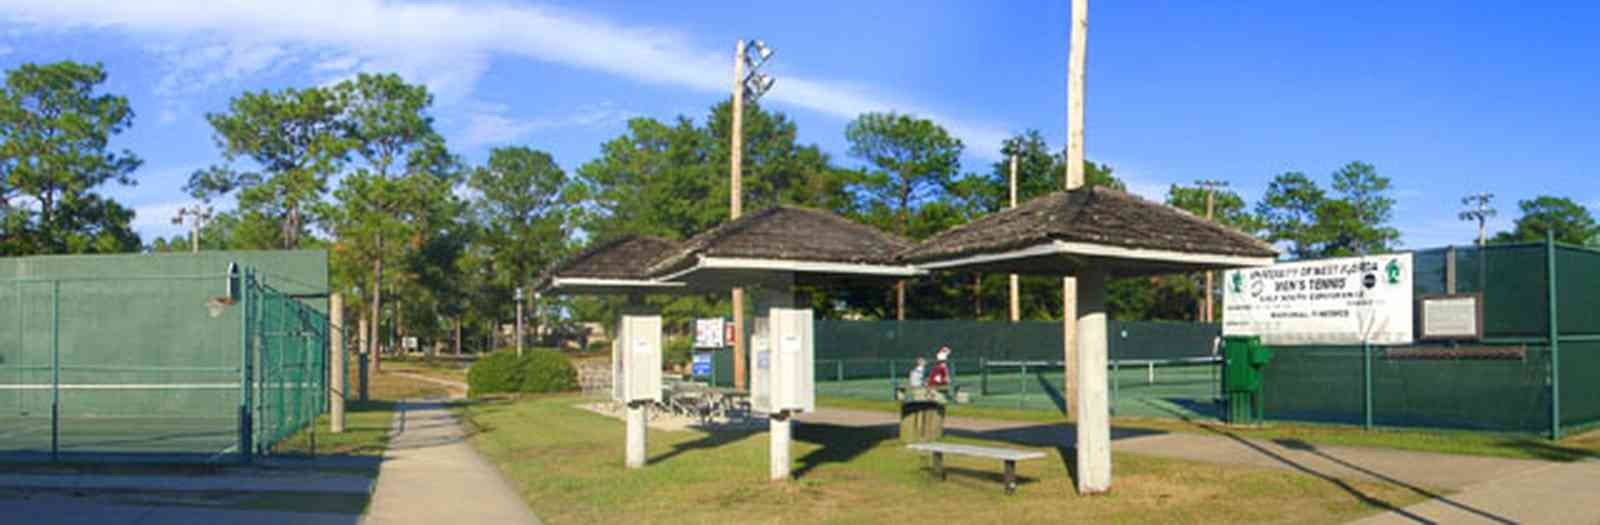 University-Of-West-Florida:-Campus_29.jpg:  university, campus, student, tennis courts, recreational facility